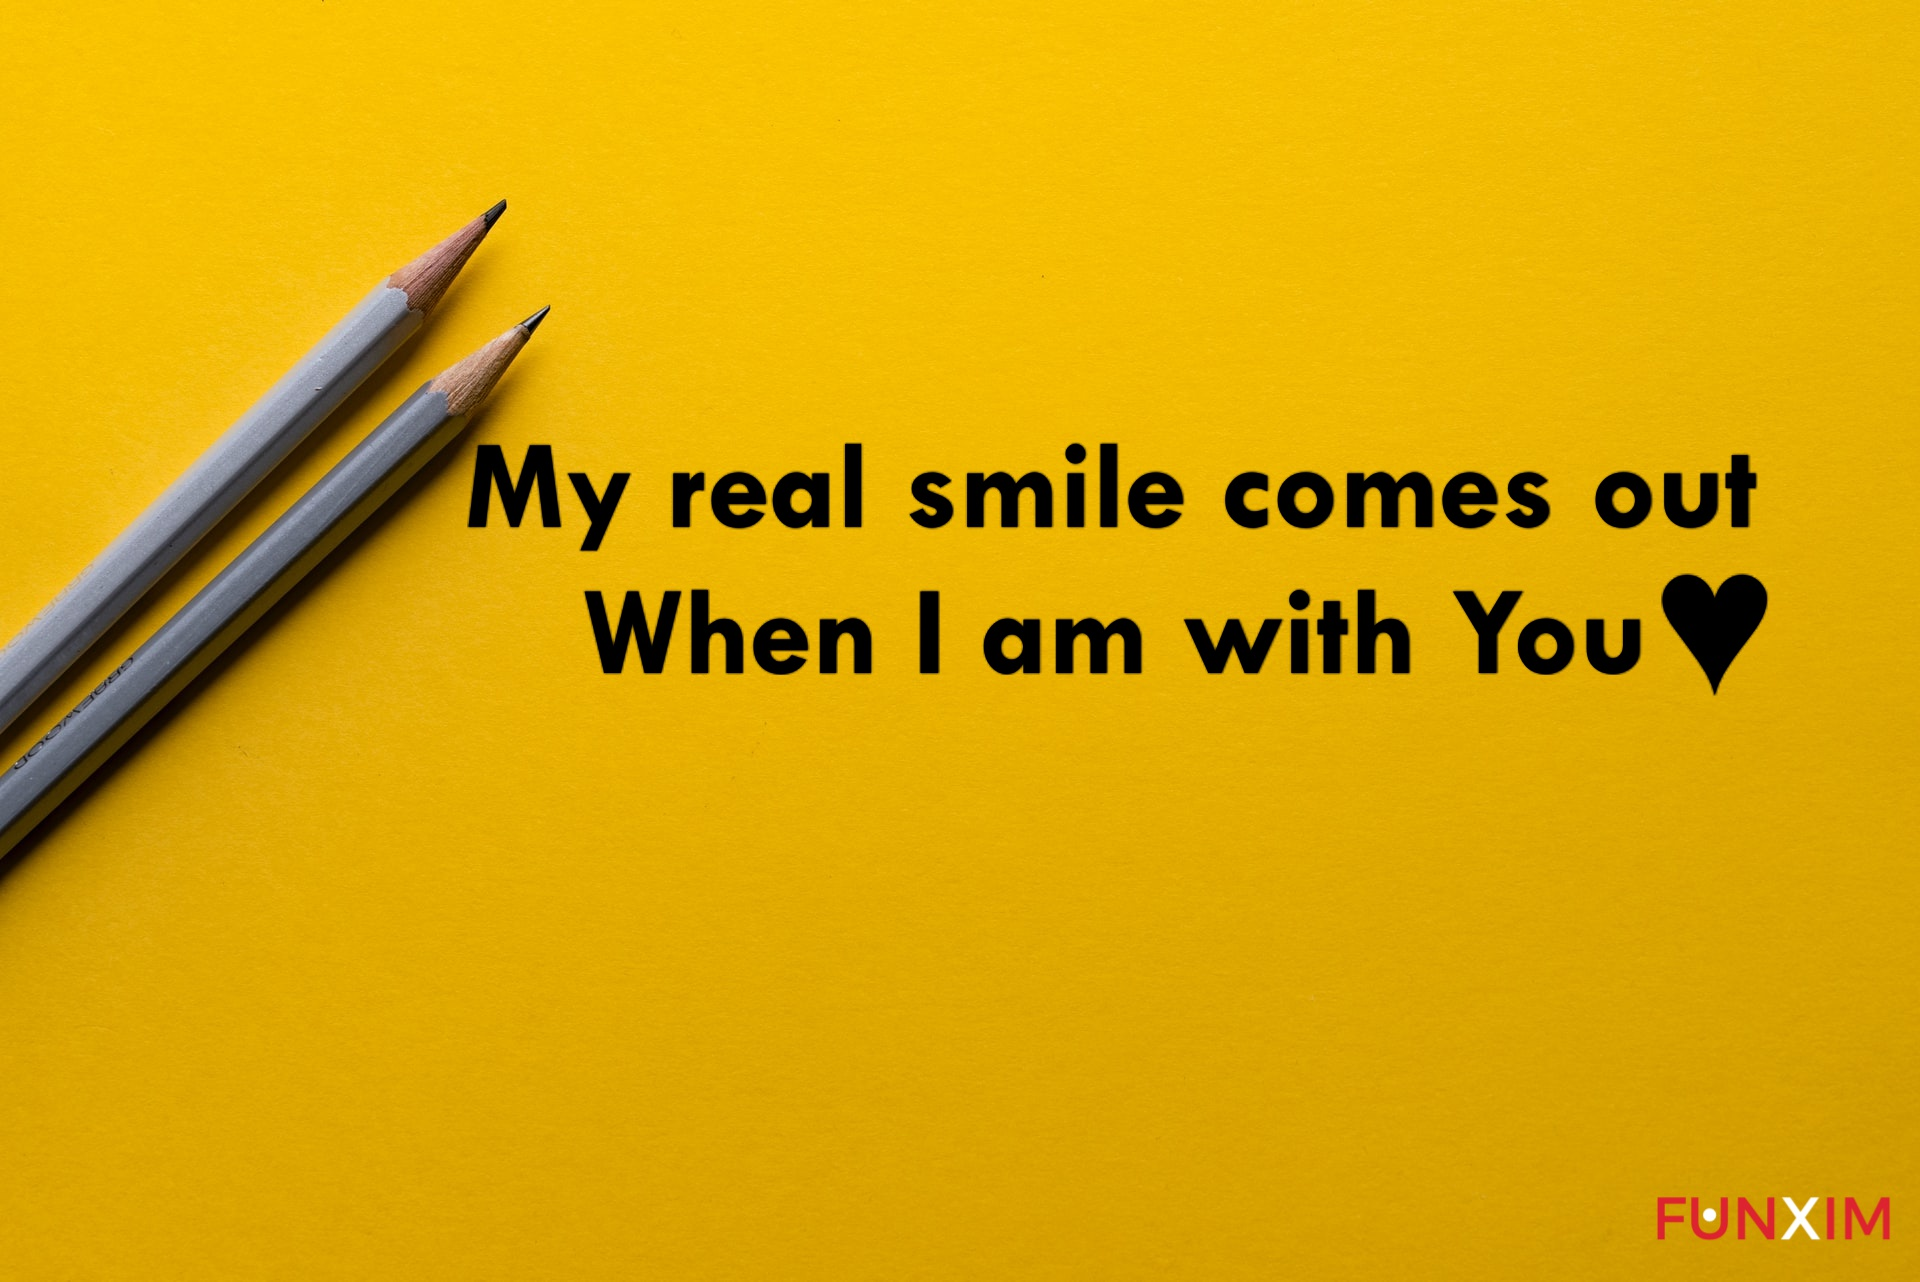 My real smile comes out when I am with you